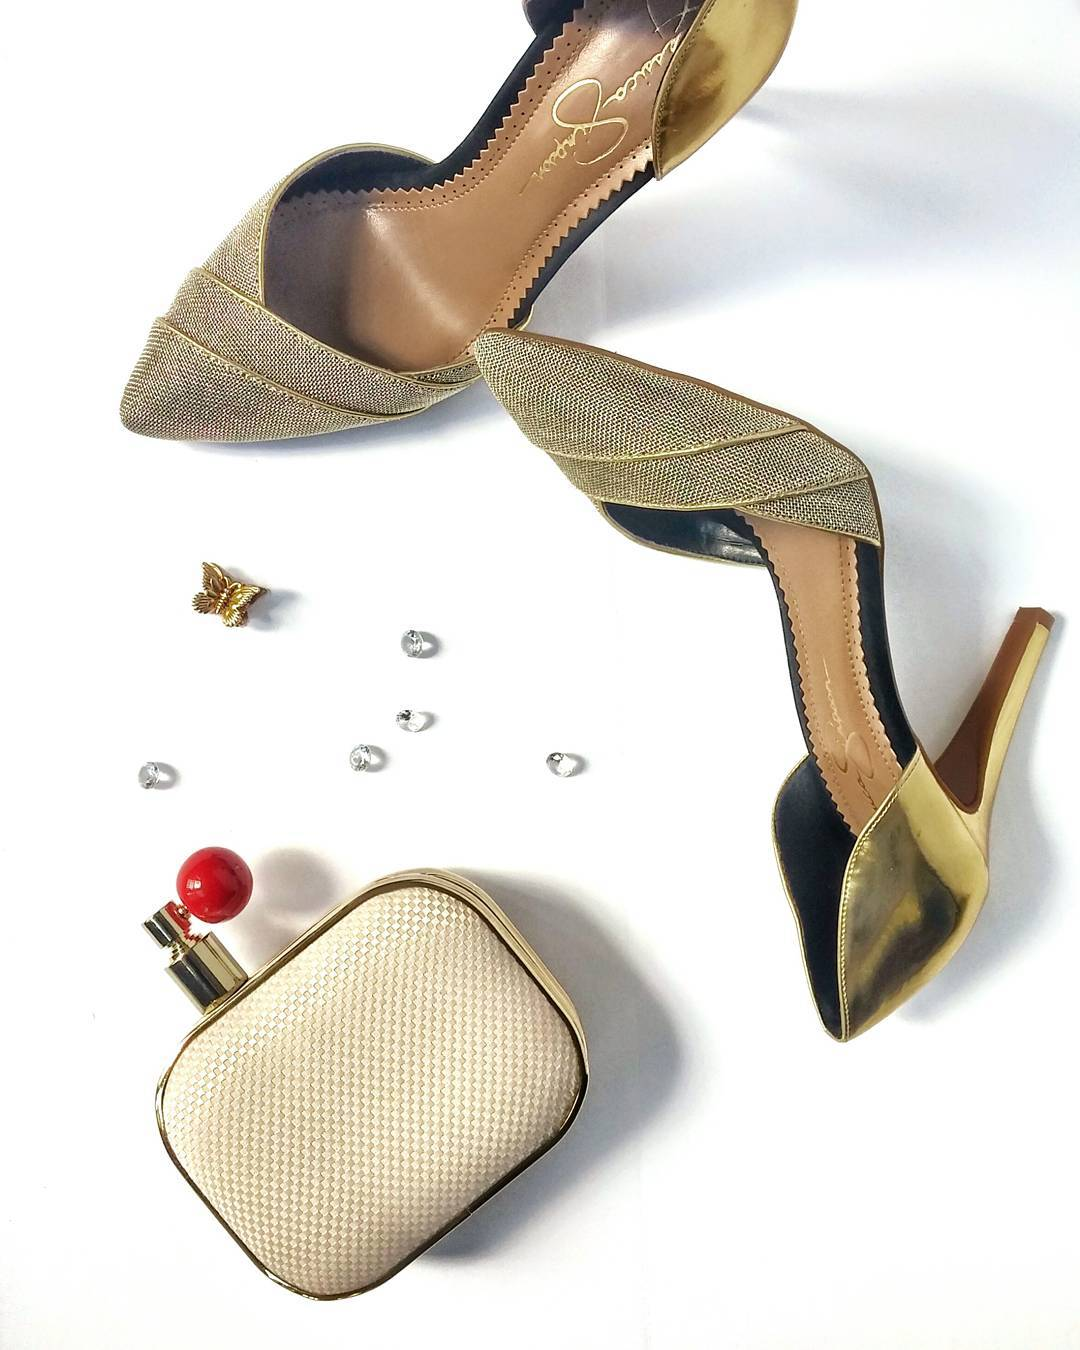 Last post for this #WeddingWednesday... Throw back to 3 items that kept me going on my wedding day:  My @jessicasimpsonstyle pumps... these were shoe 2 of 2 for the eve  The ever adorable, constantly complimented on @mindesign_ca perfume bottle shaped clutch that held my lipbalm, eyeliner, and a little sanity at the bottom  @zivadesigns keepsake for my something old, from early high school years, it still makes me tear up <3